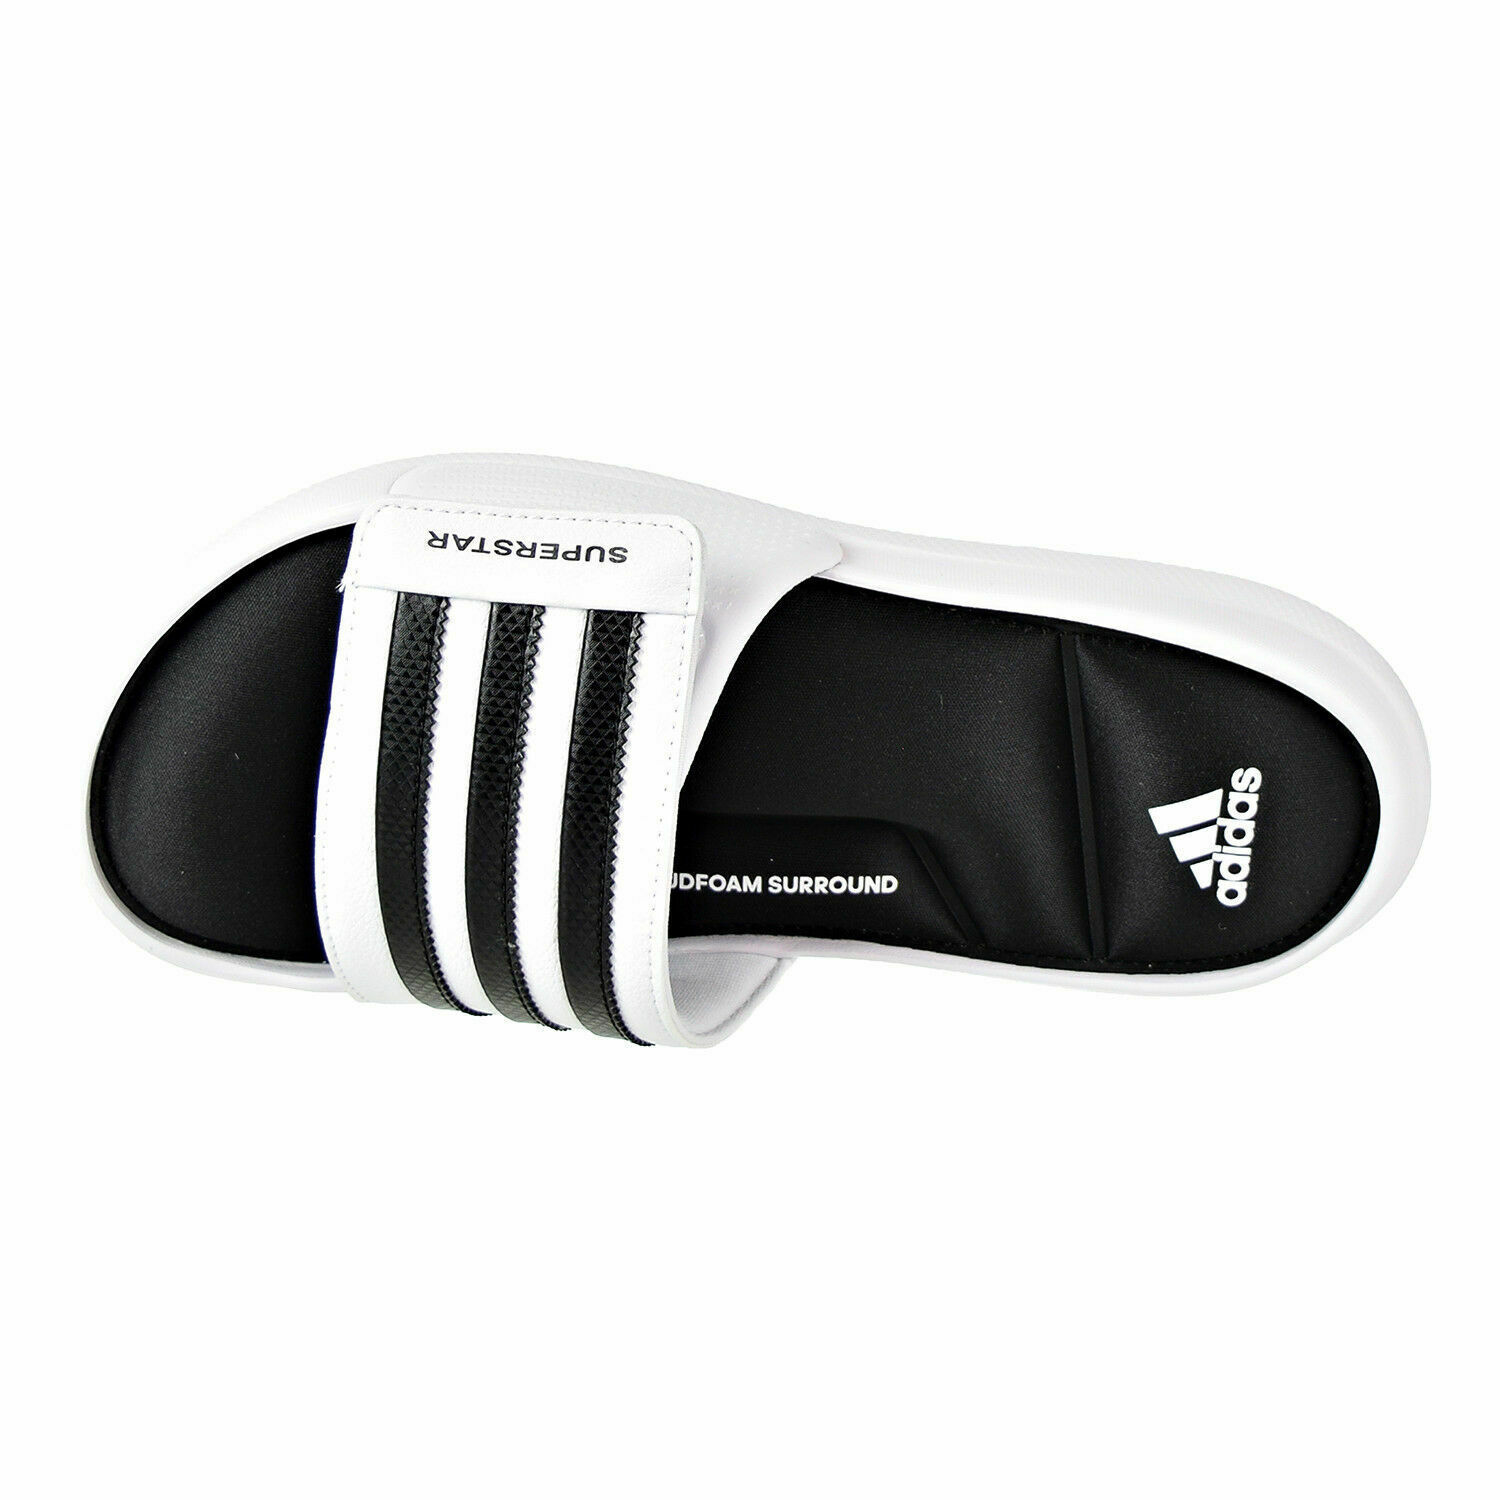 ADIDAS SUPERSTAR SURROUND MEMORY FOAM SLIDE SANDALS MEN SHOES MILK SIZE 15 NEW image 2